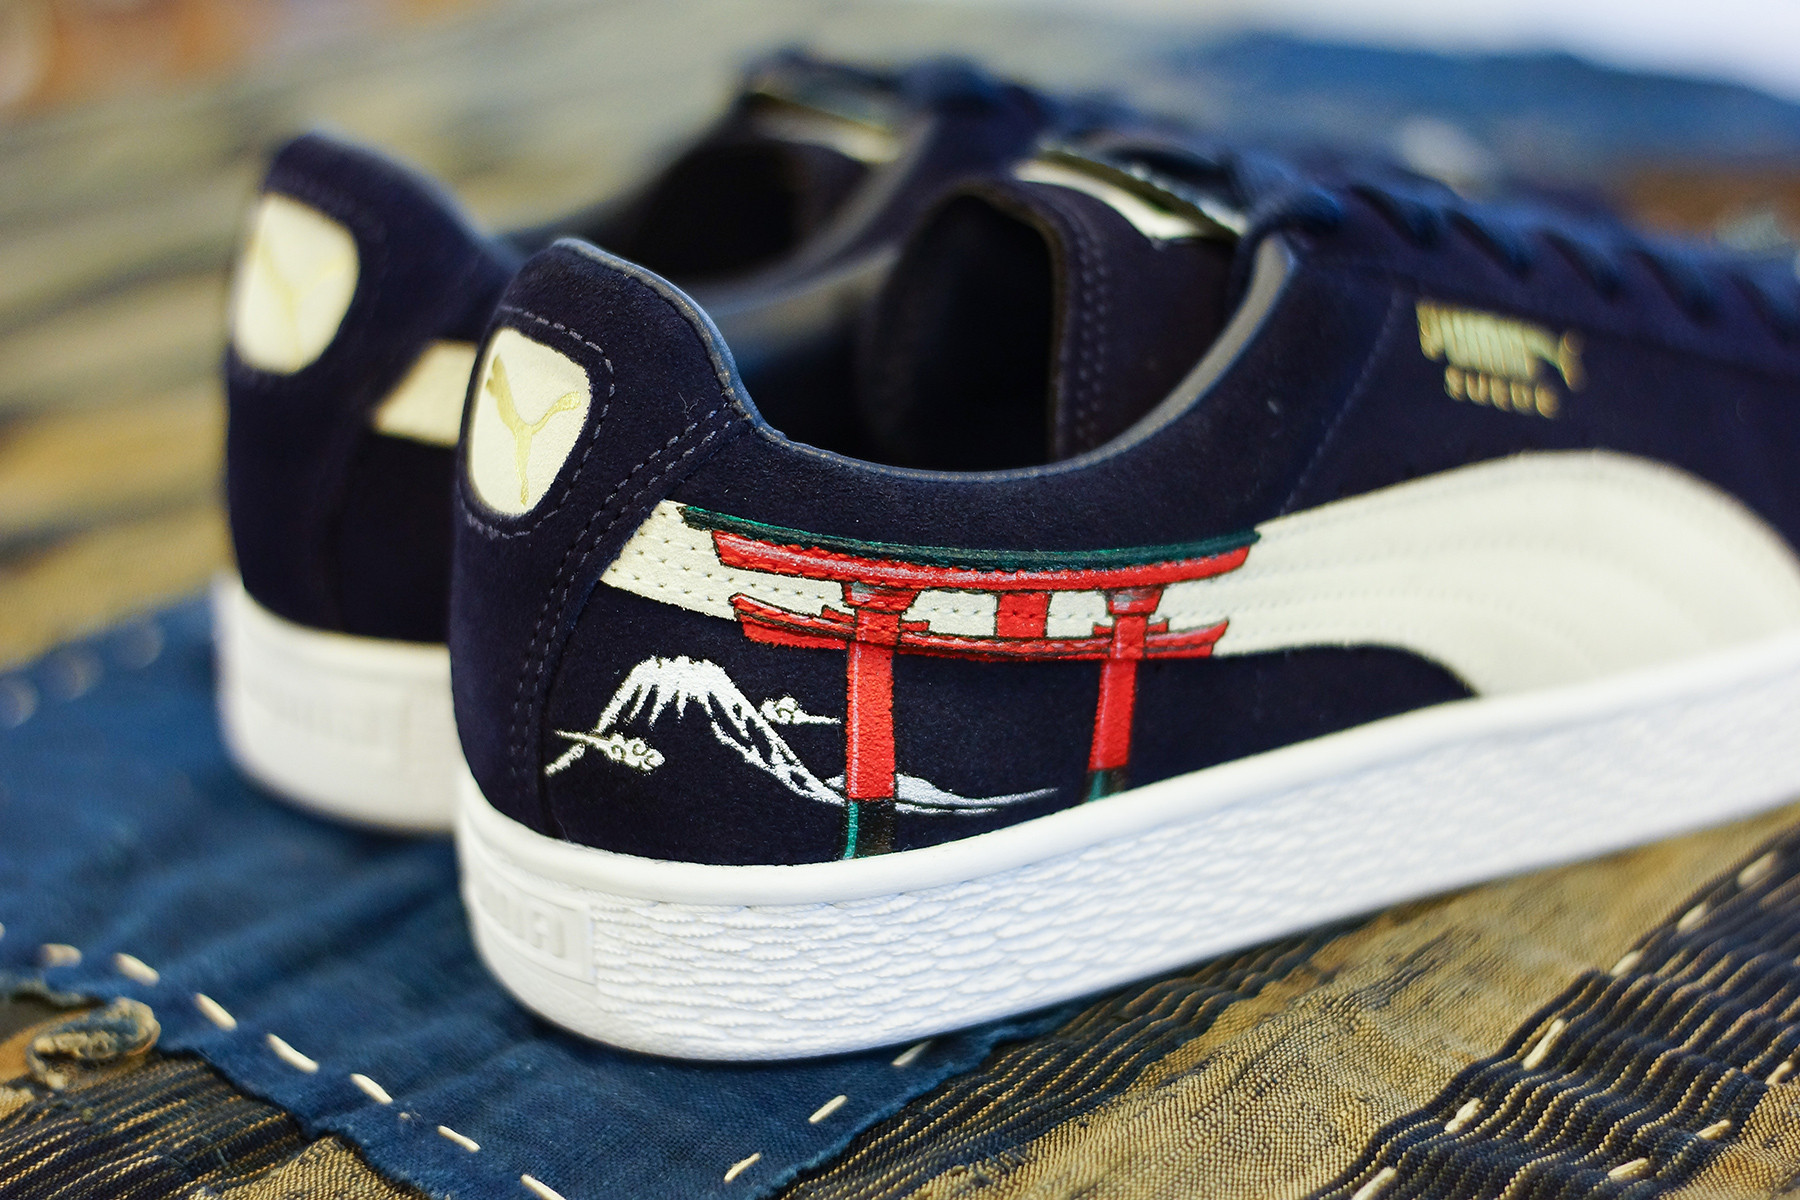 The PUMA Suede Sees a Traditional Ukiyo